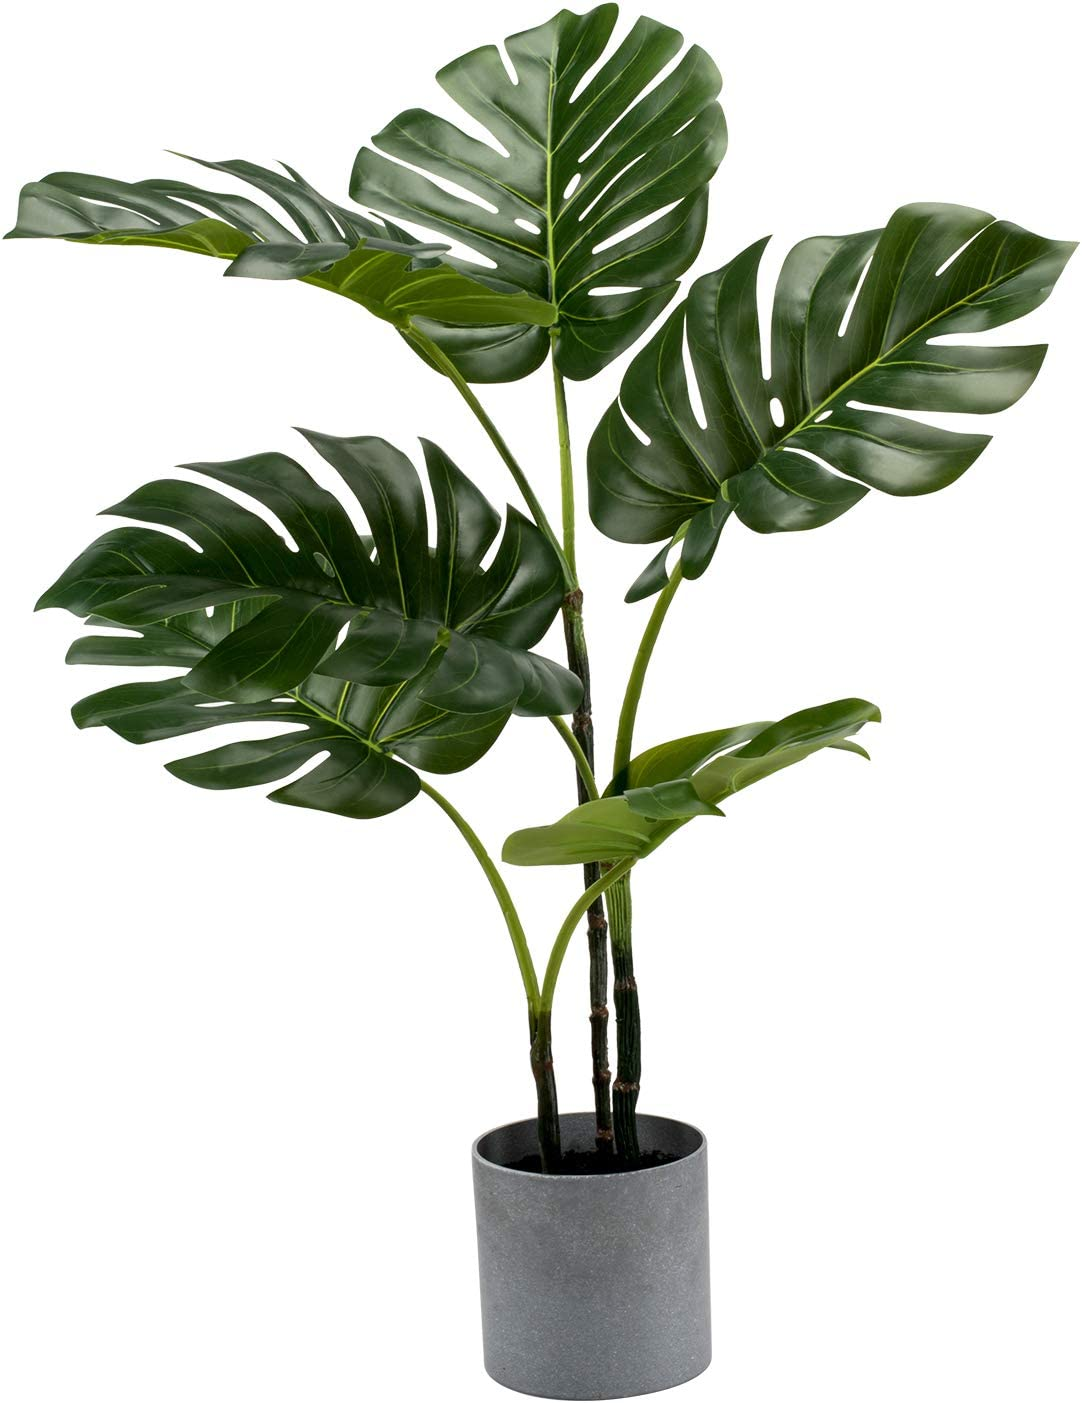 Safety and trust LuckyGreenery Artificial Monstera Realistic Po Lowest price challenge Plants Fake with